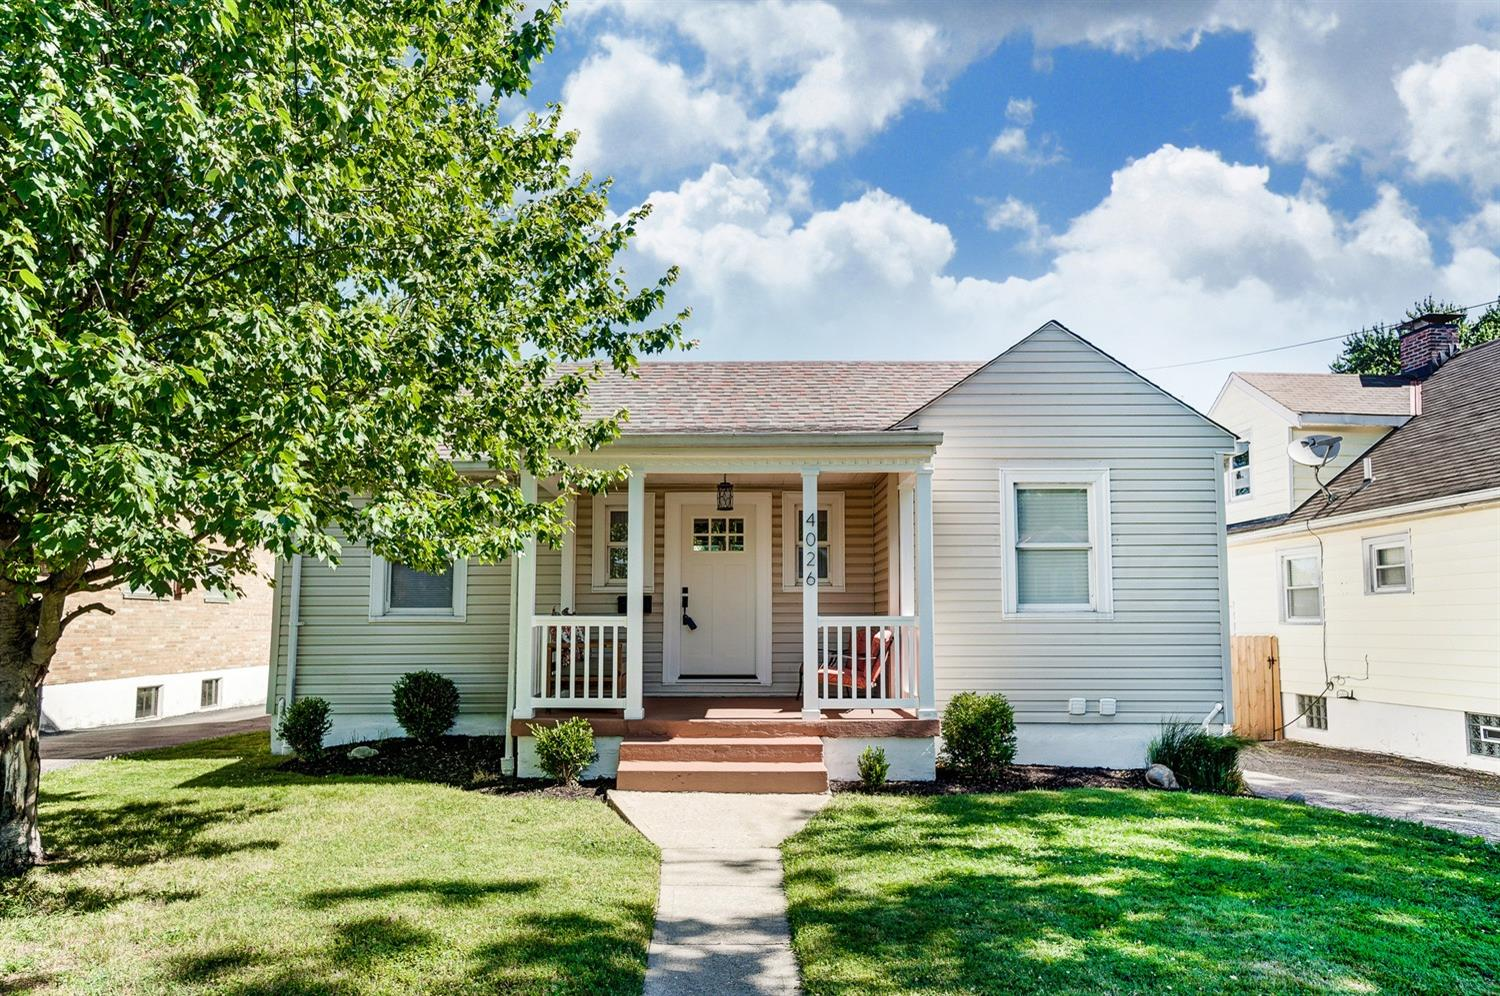 Property for sale at 4026 Oleary Avenue, Deer Park,  Ohio 45236